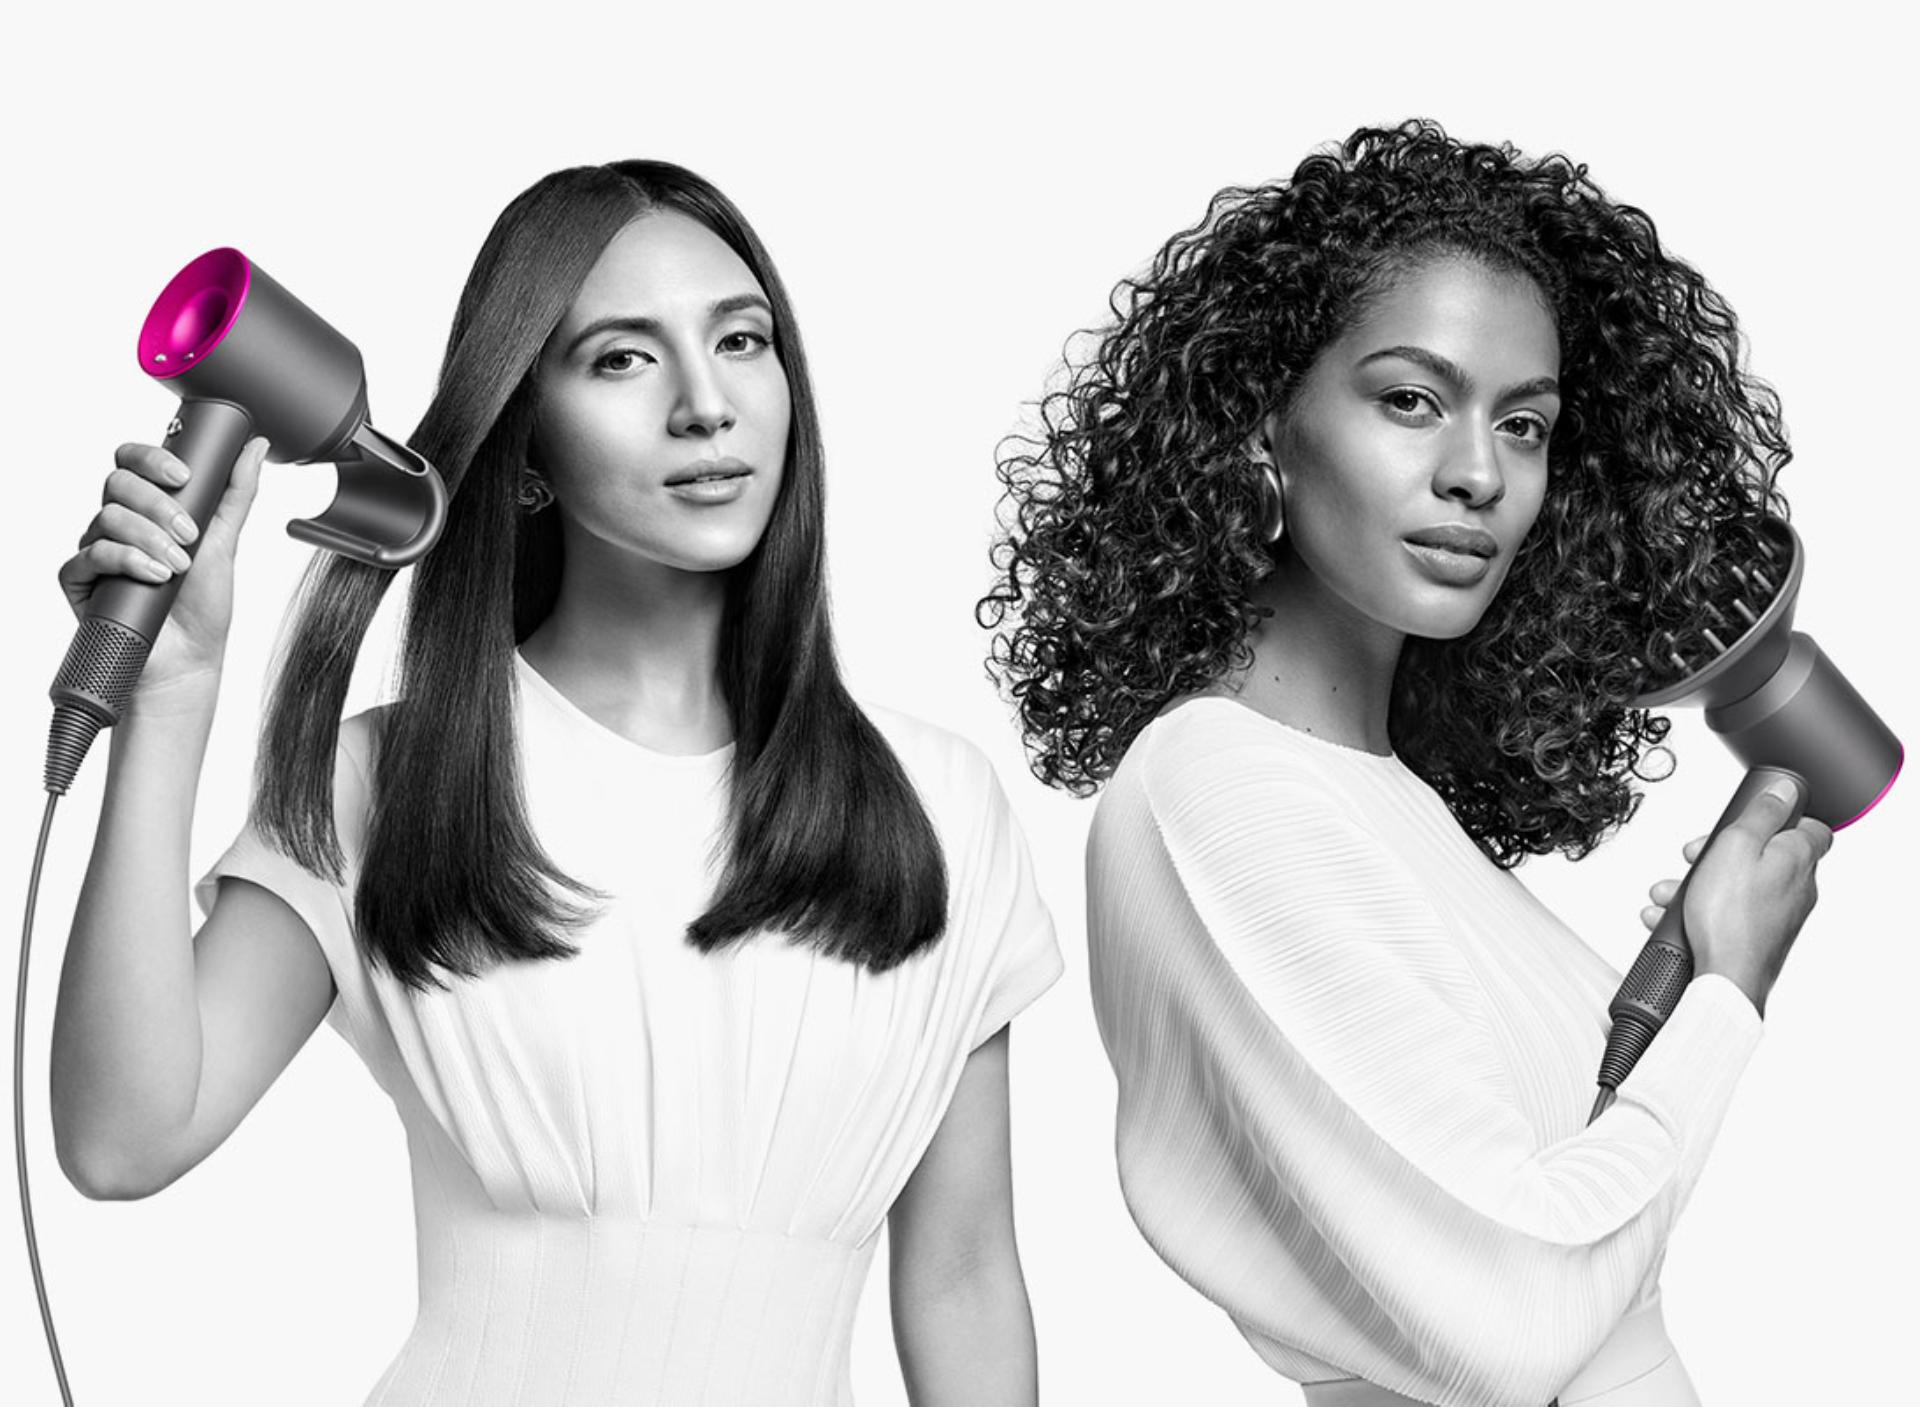 Model using the Dyson Supersonic hair dryer